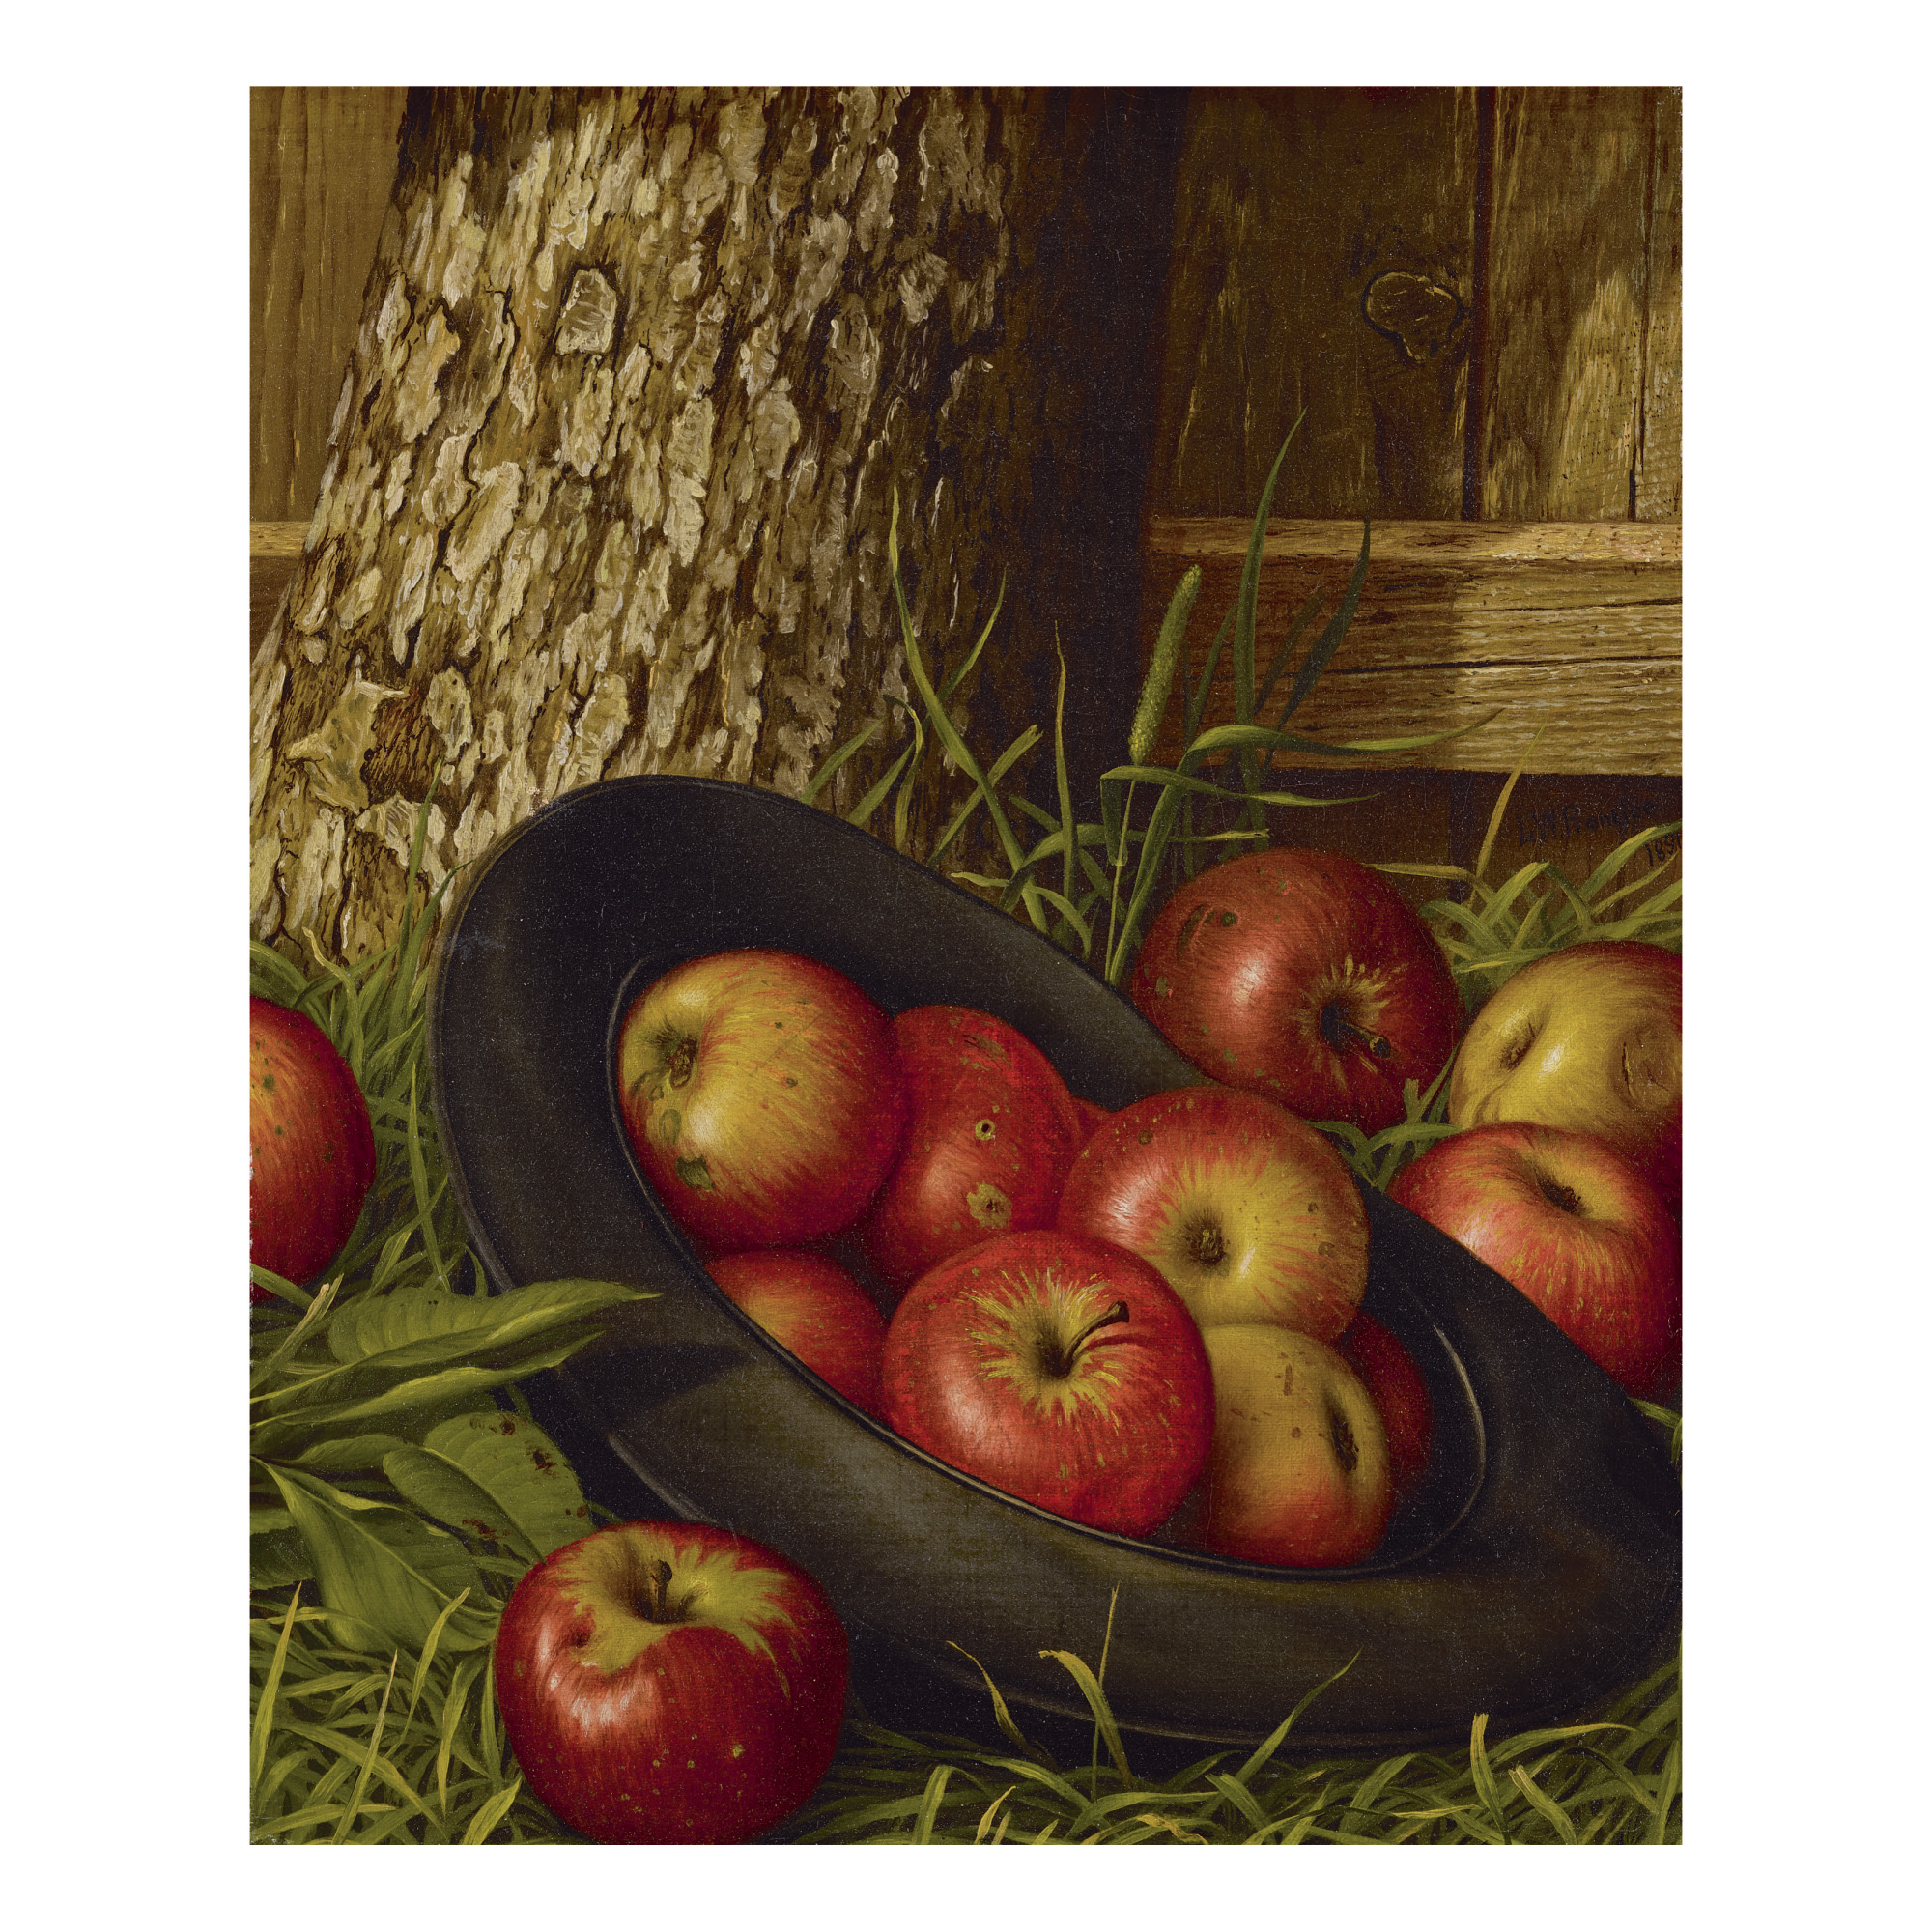 LEVI WELLS PRENTICE | STILL LIFE OF APPLES IN A HAT